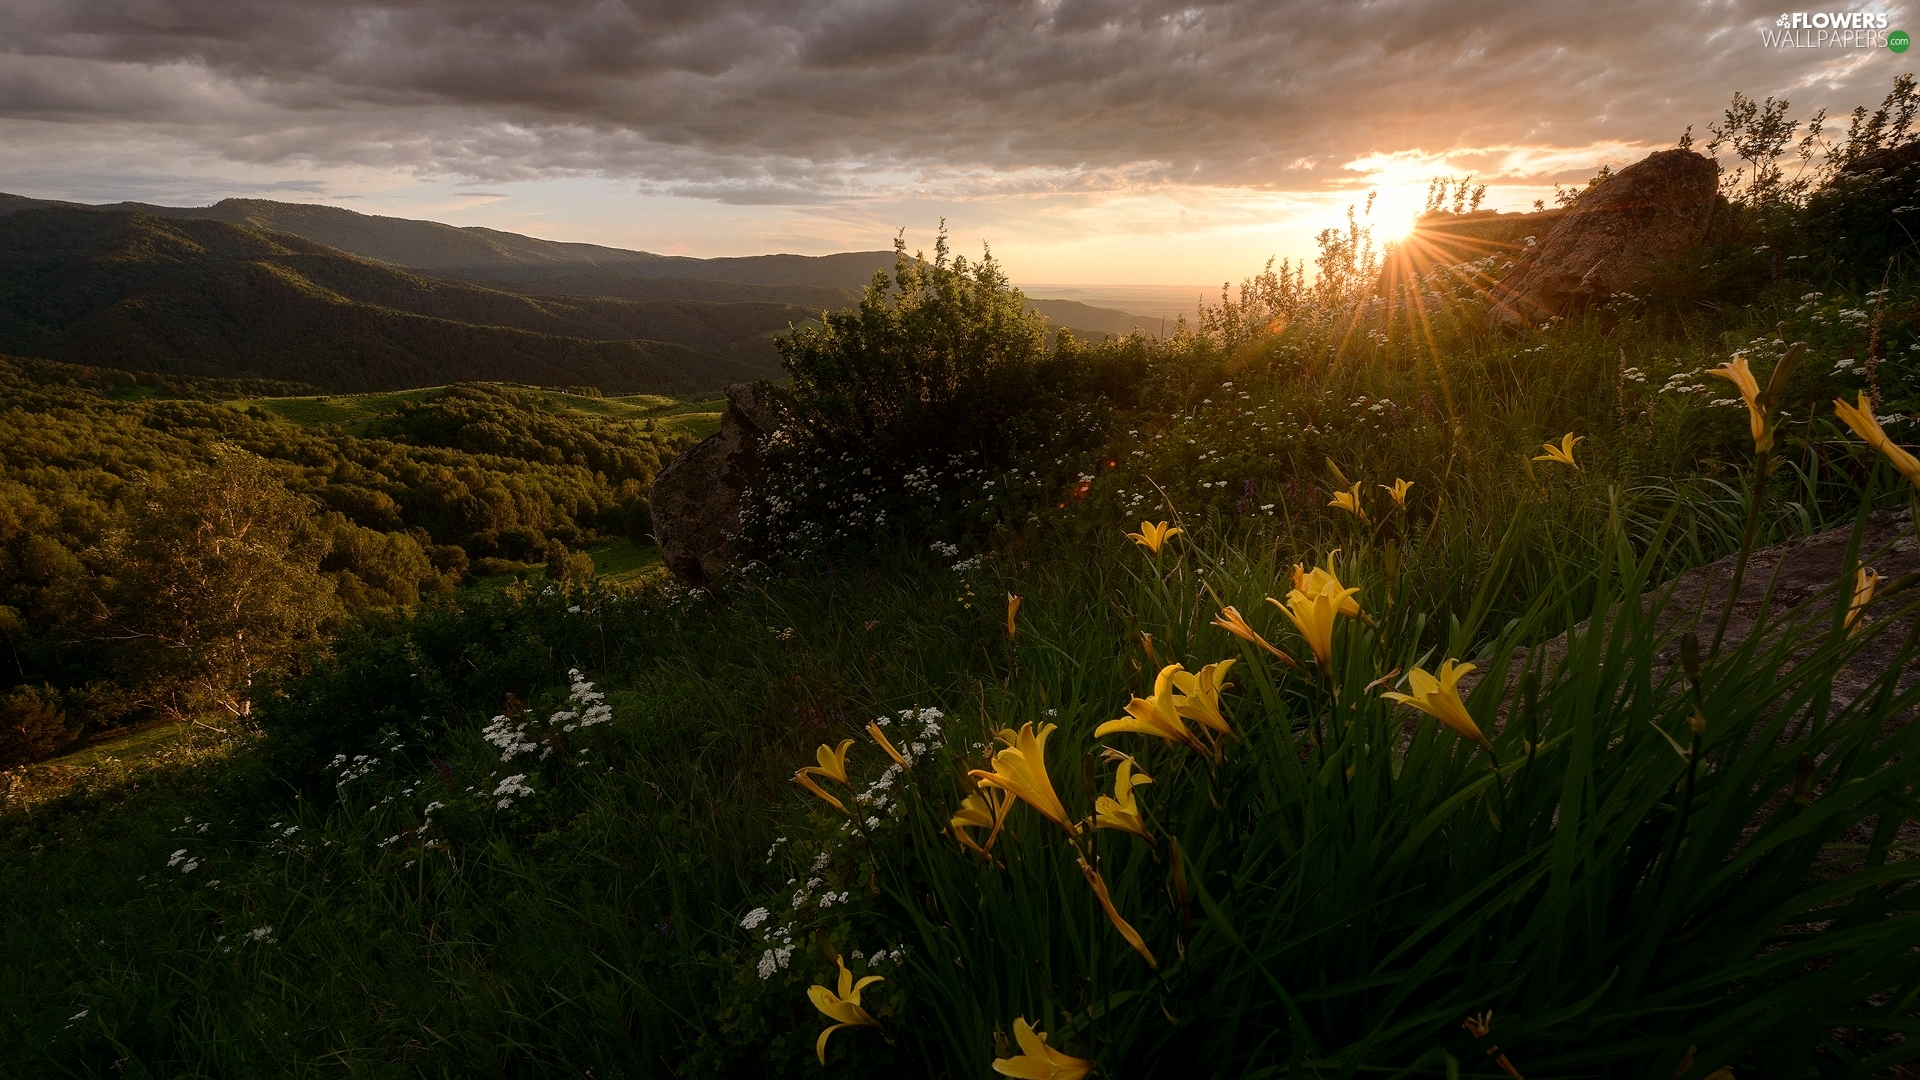 Flowers, Mountains, lilies, rays of the Sun, Yellow, Plants